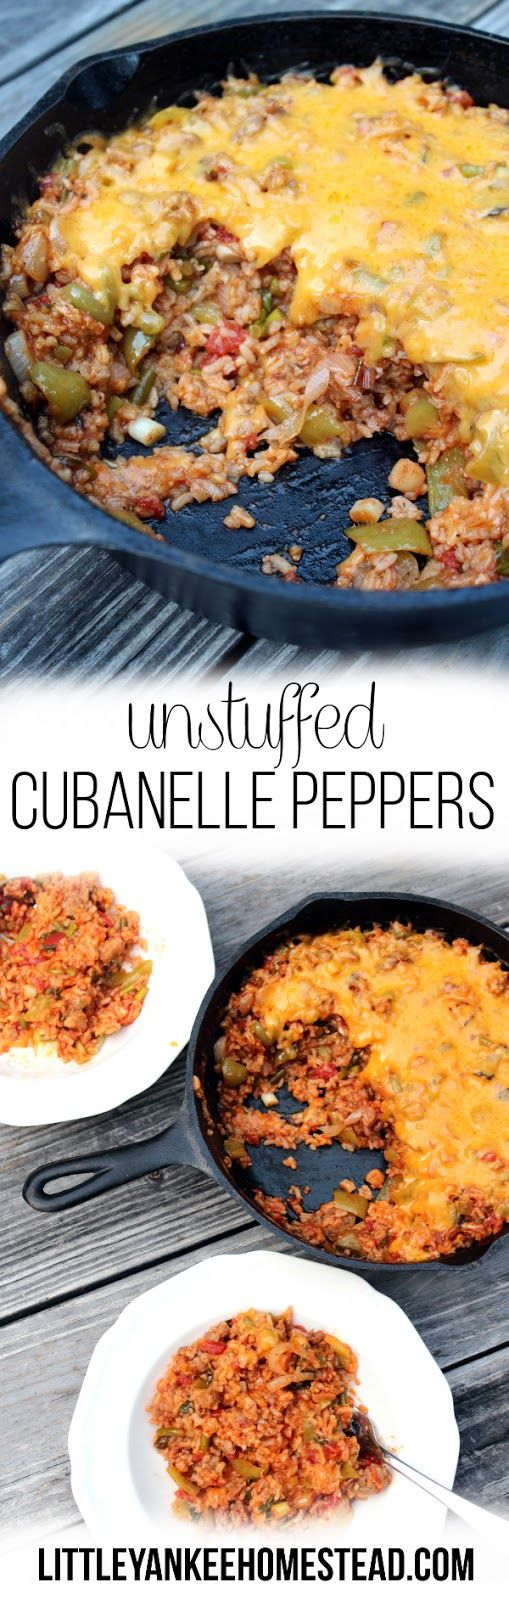 Unstuffed Cubanelle Peppers: an easy skillet recipe using sausage, cubanelle peppers, rice, and garlic scapes.    littleyankeehomestead.com